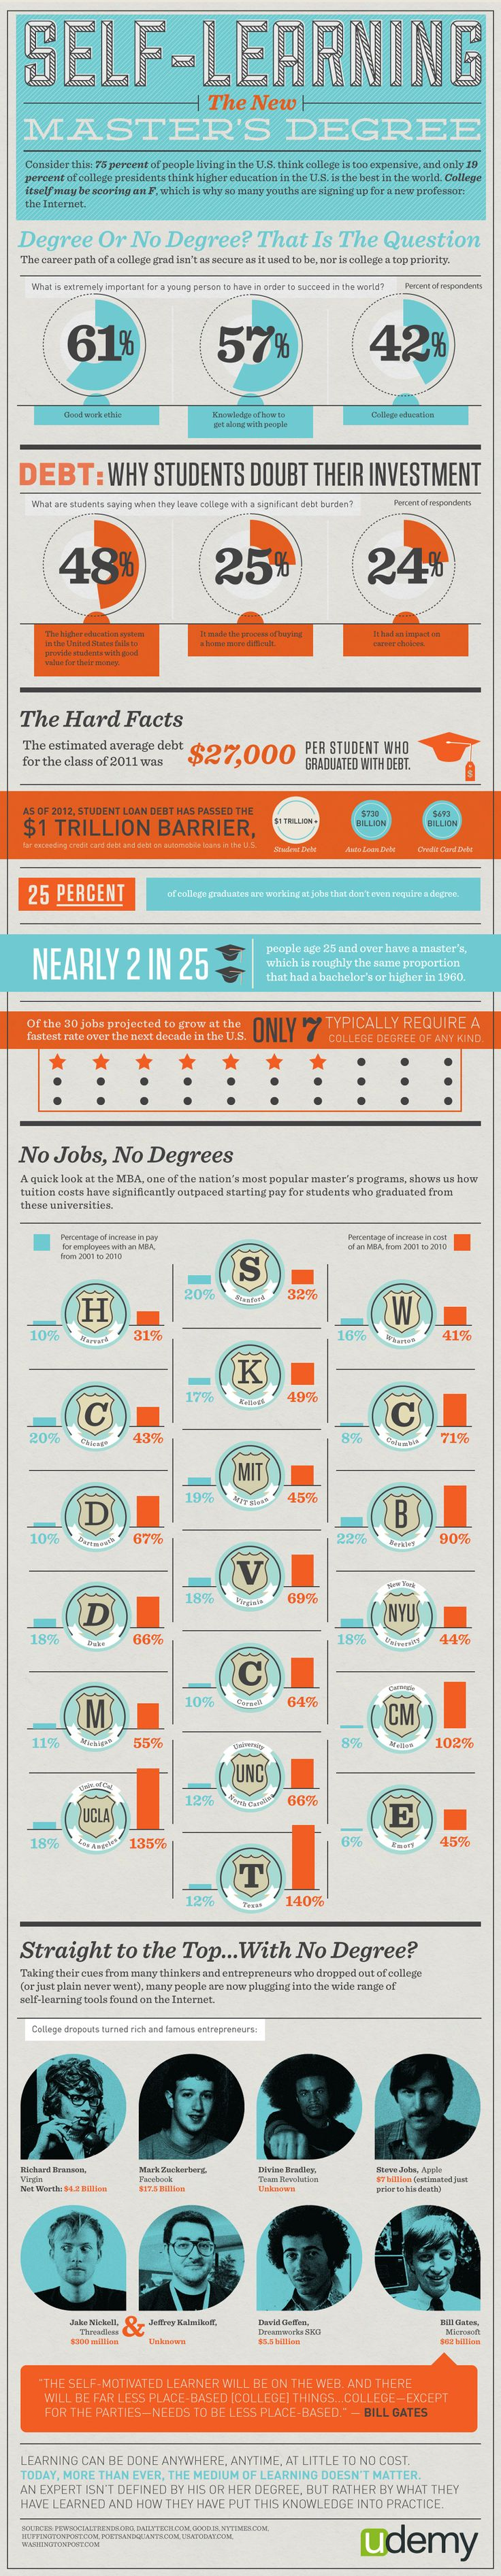 Infographic: Self Learning: The New Masteru0027s Degree